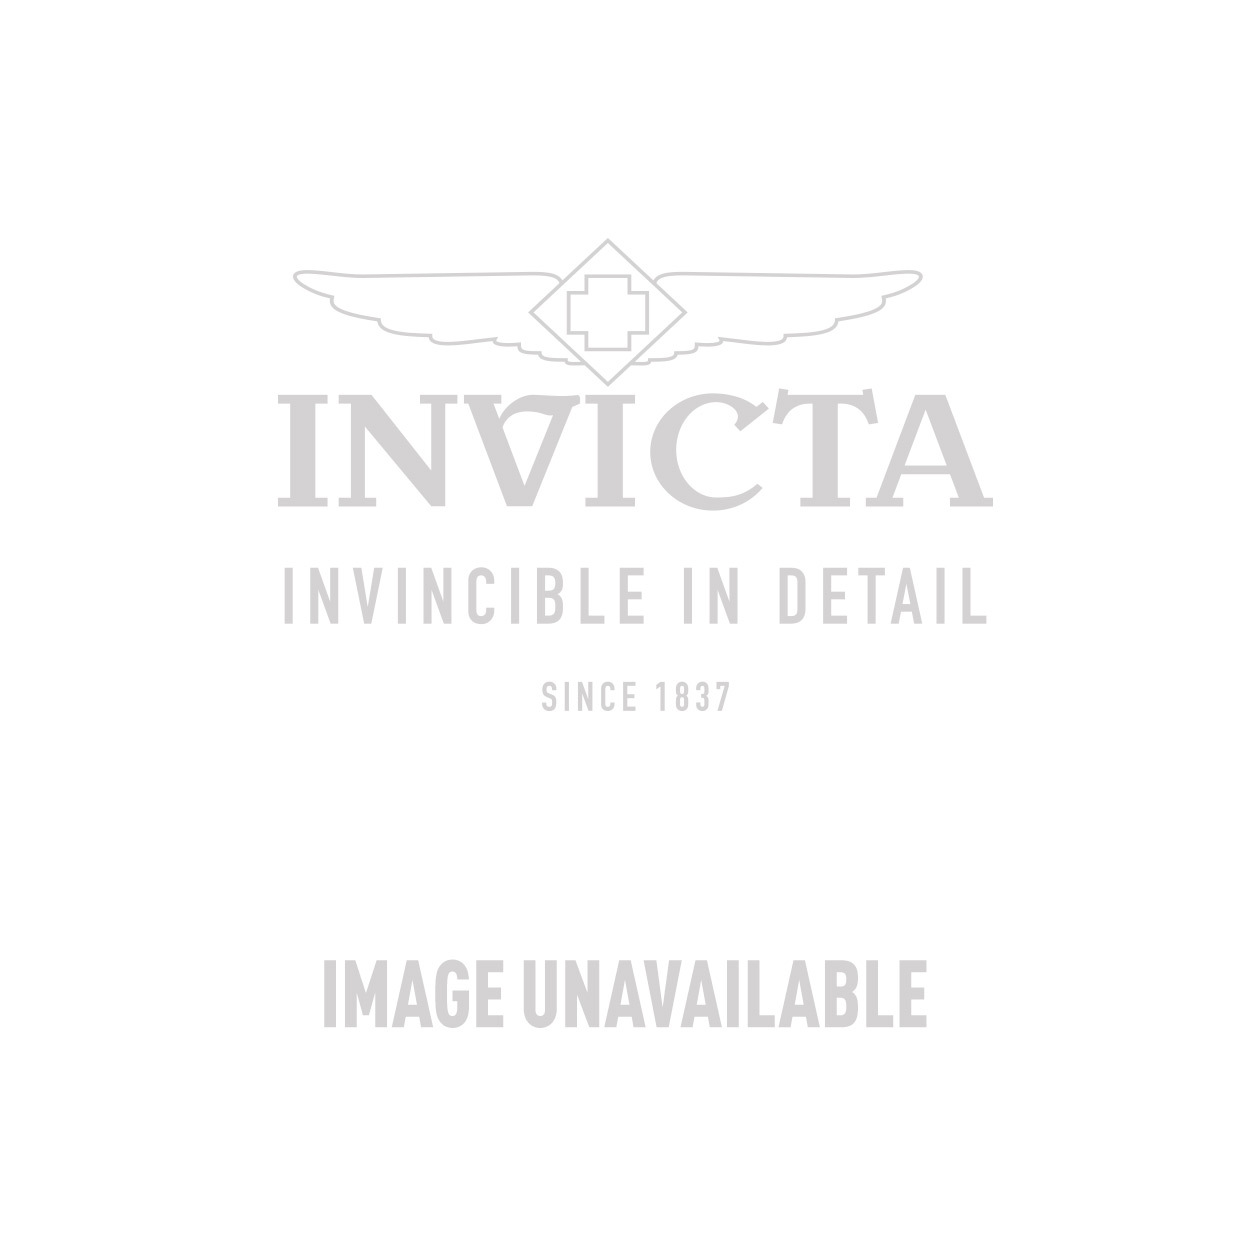 Invicta 1 Slot Impact Case - Model DC1GRN/BLK